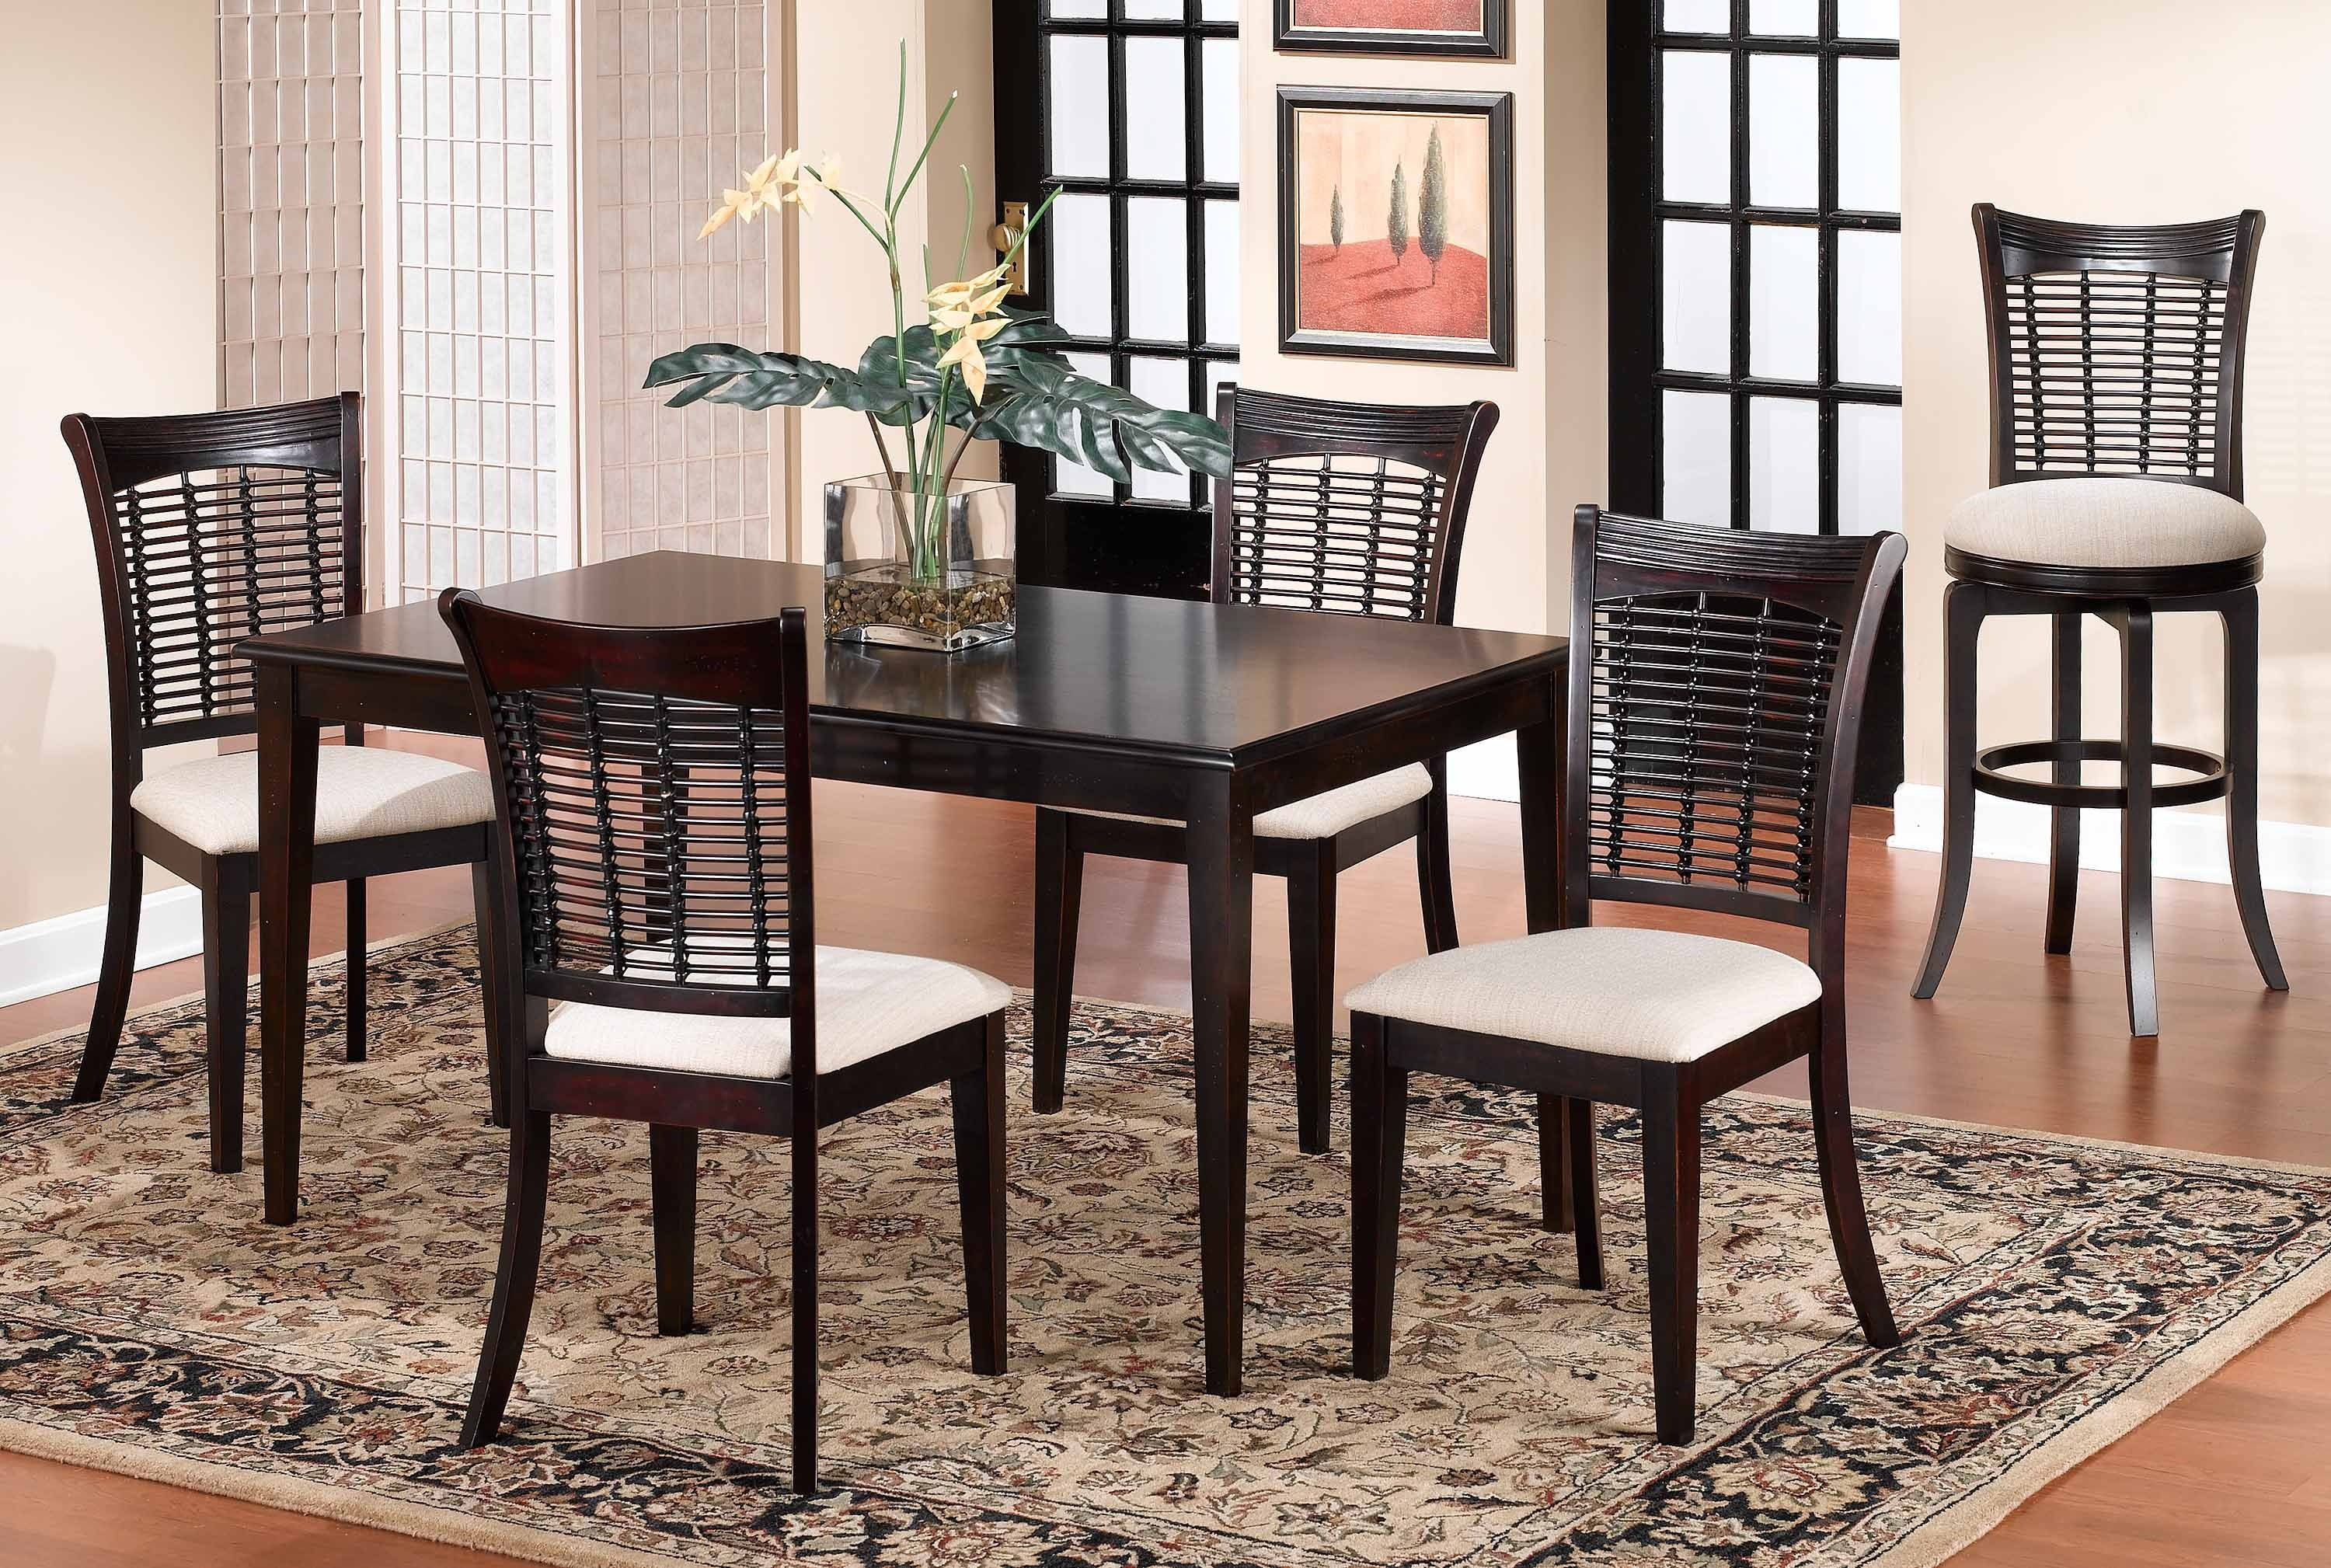 4783DTBCRCT. Bayberry 5 Piece Rectangle Dining Set ...